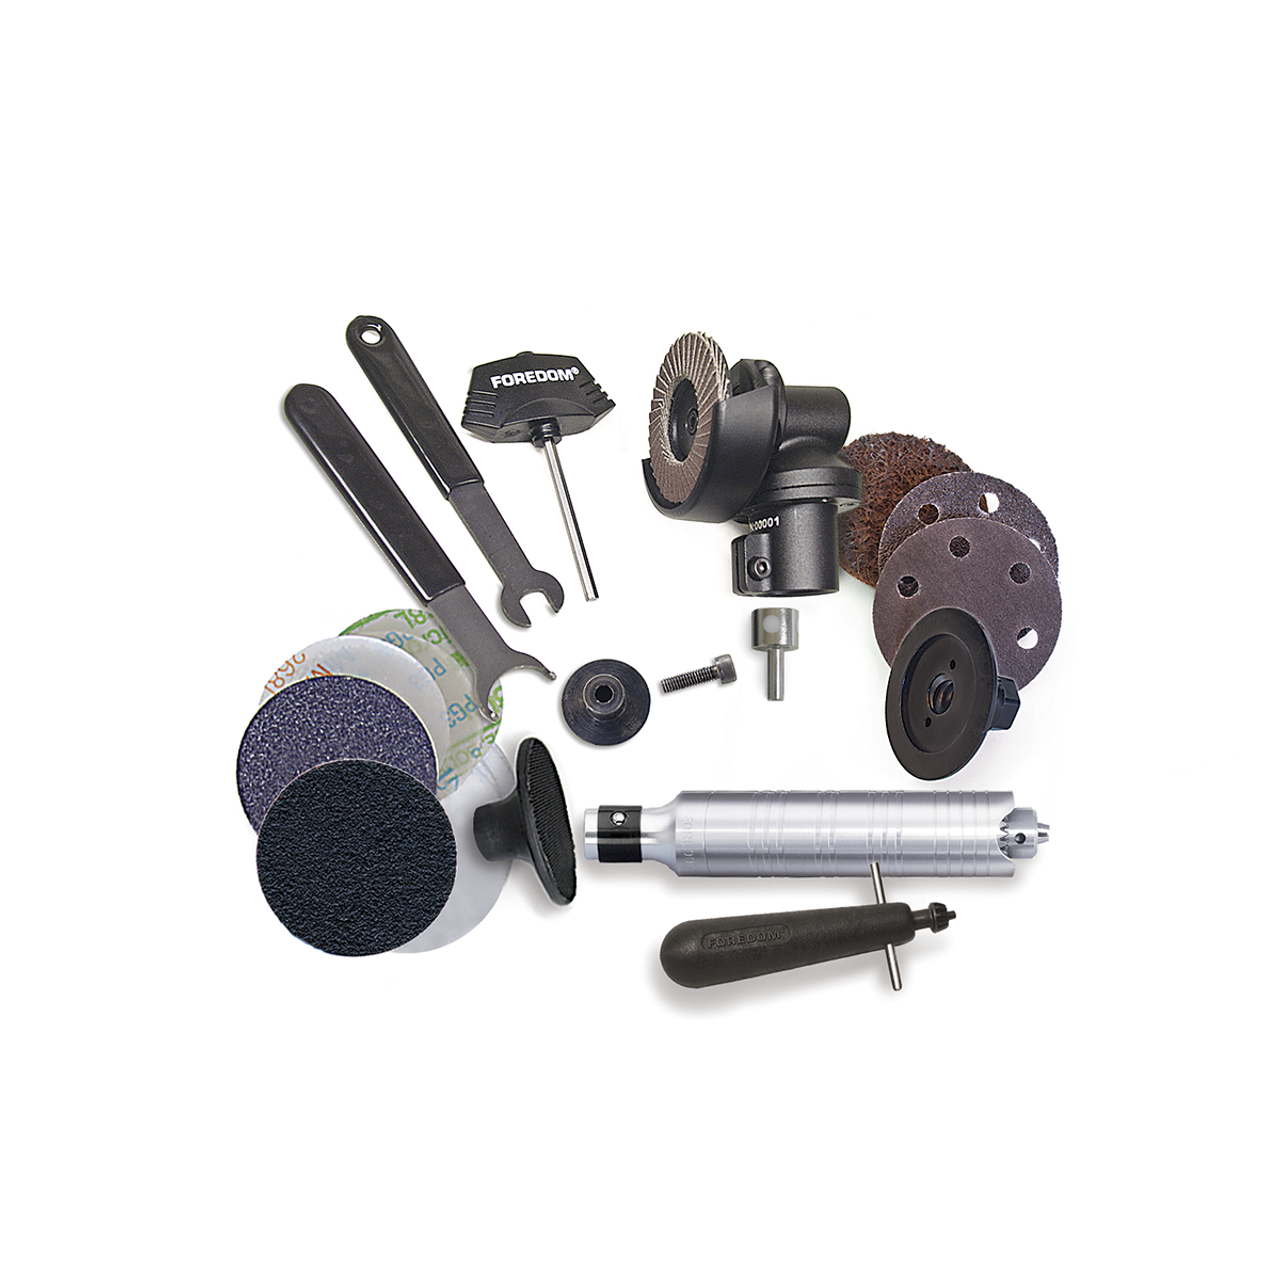 Foredom Angle Grinder with H30 Handpiece